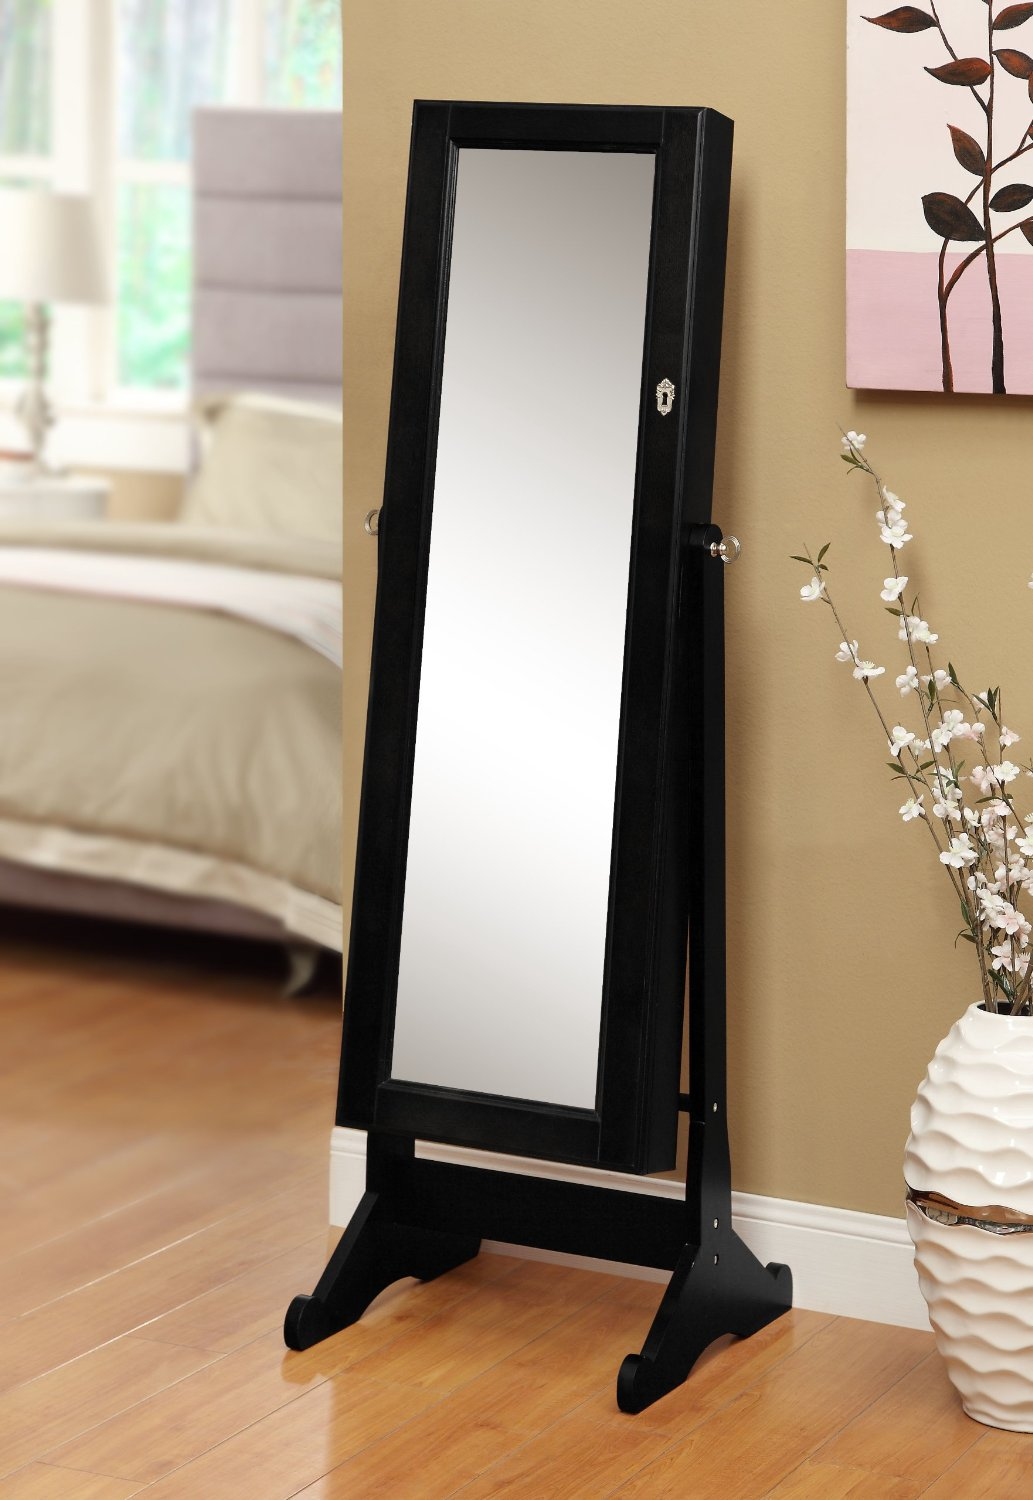 fancy standing mirror jewelry armoire in black before the tan wall matched with wooden floor plus bed for bedroom decor ideas